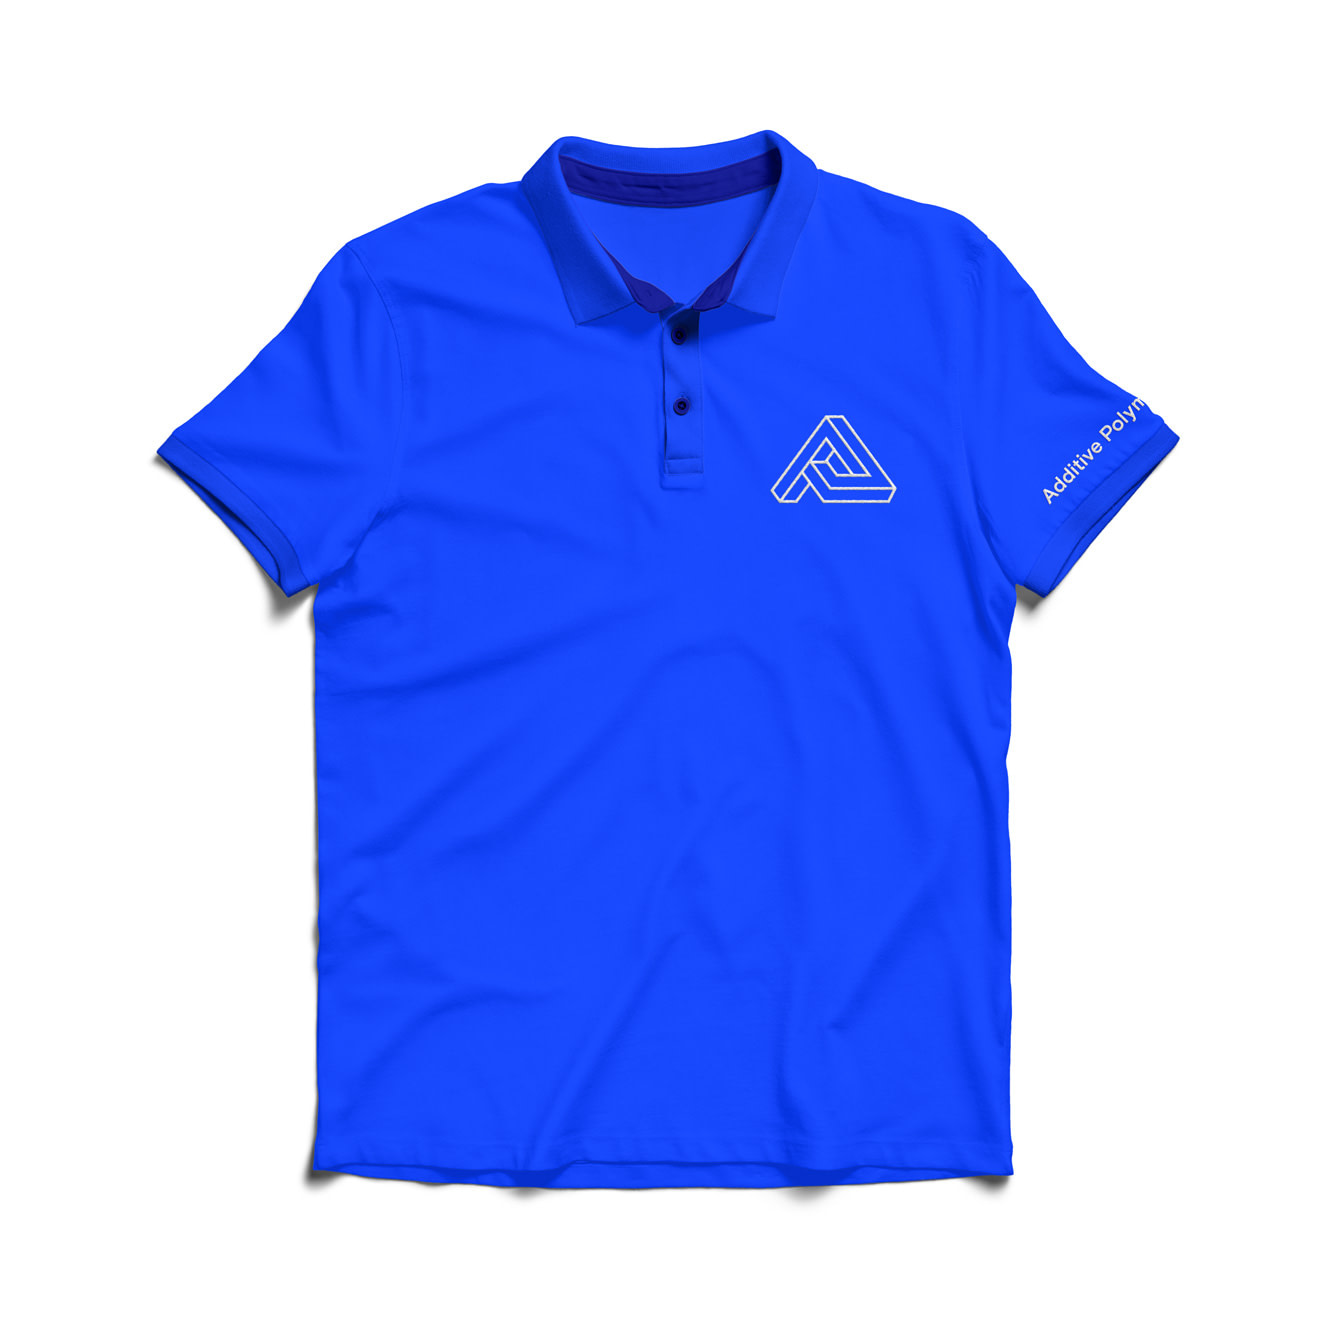 Bright blue polo shirt with a geometric A logo atop the breast